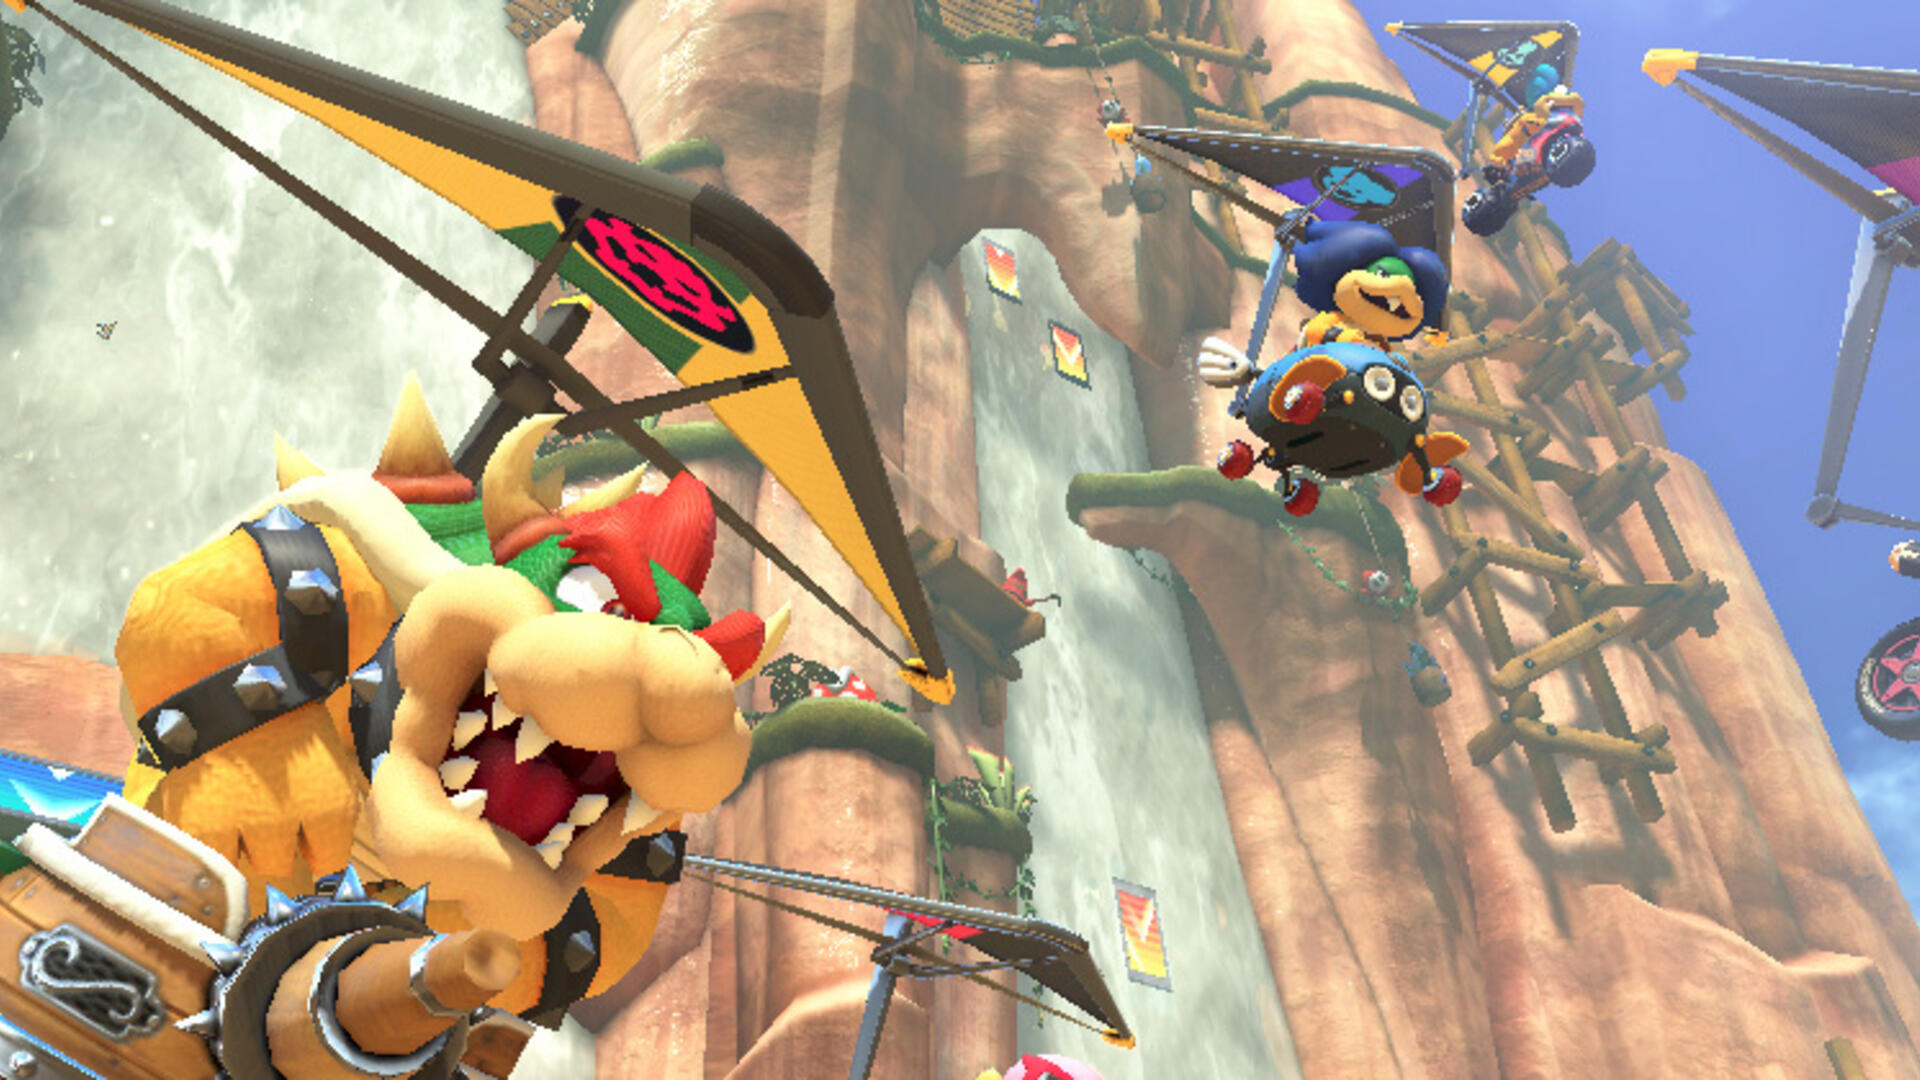 The Rise and Fall and Rise Again of Local Multiplayer